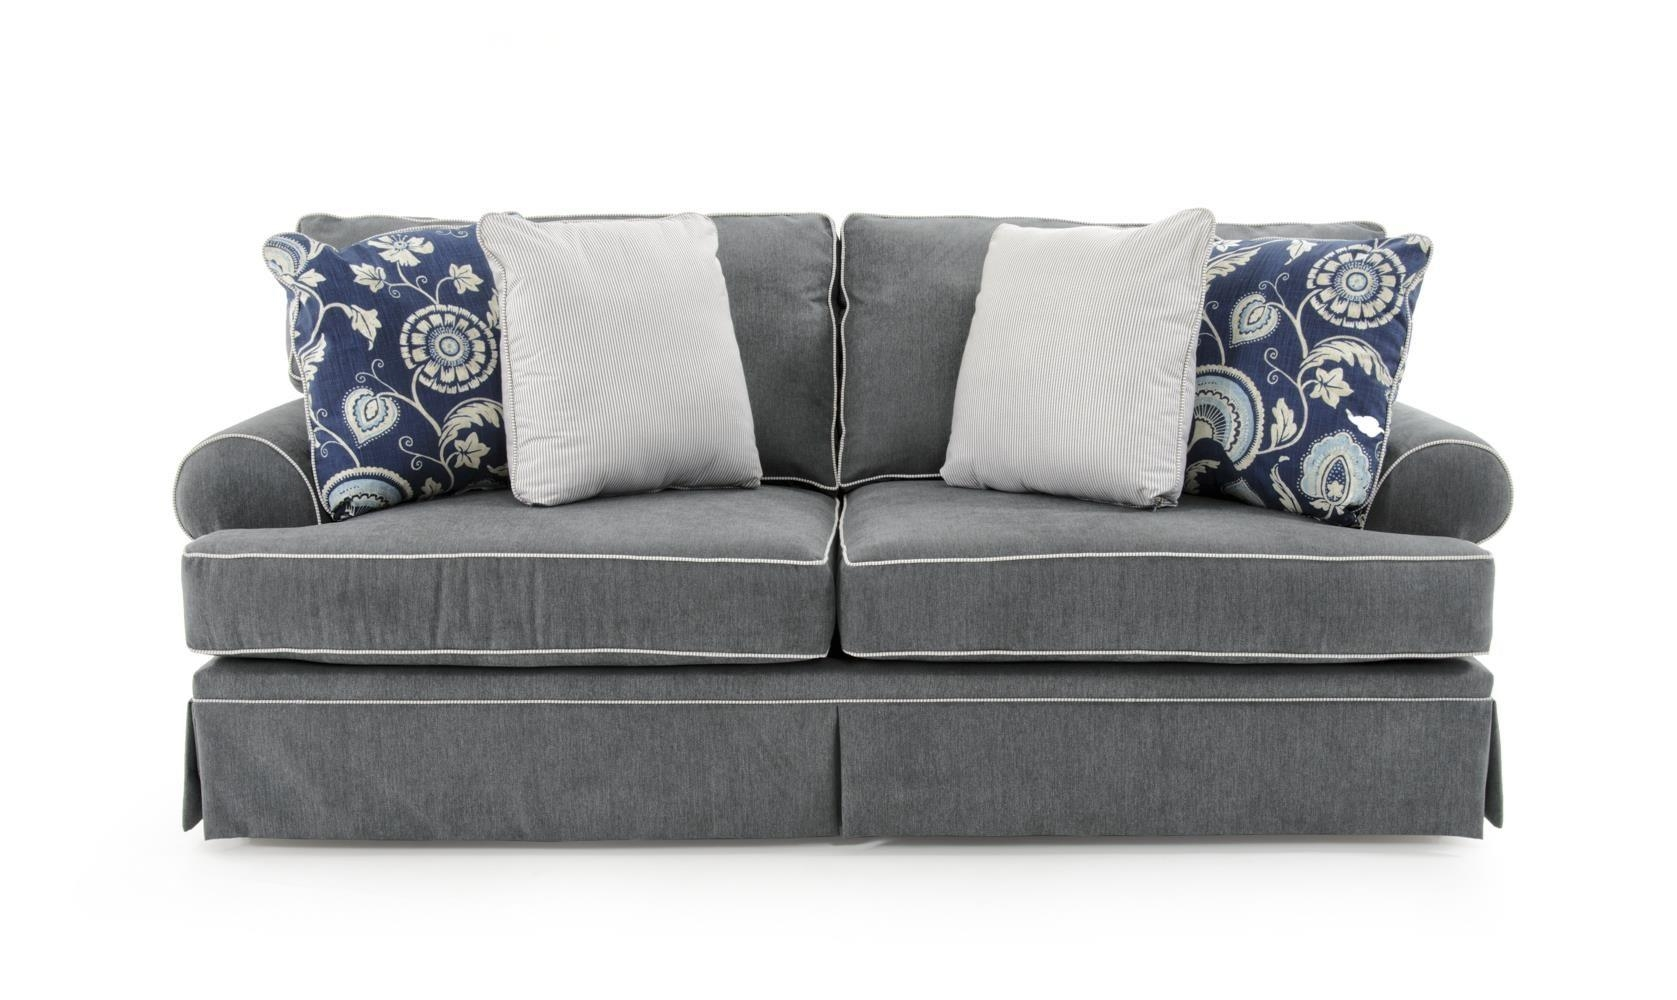 Broyhill Furniture Emily Queen Goodnight Sleeper Sofa – Baer's Pertaining To Broyhill Emily Sofas (View 3 of 20)